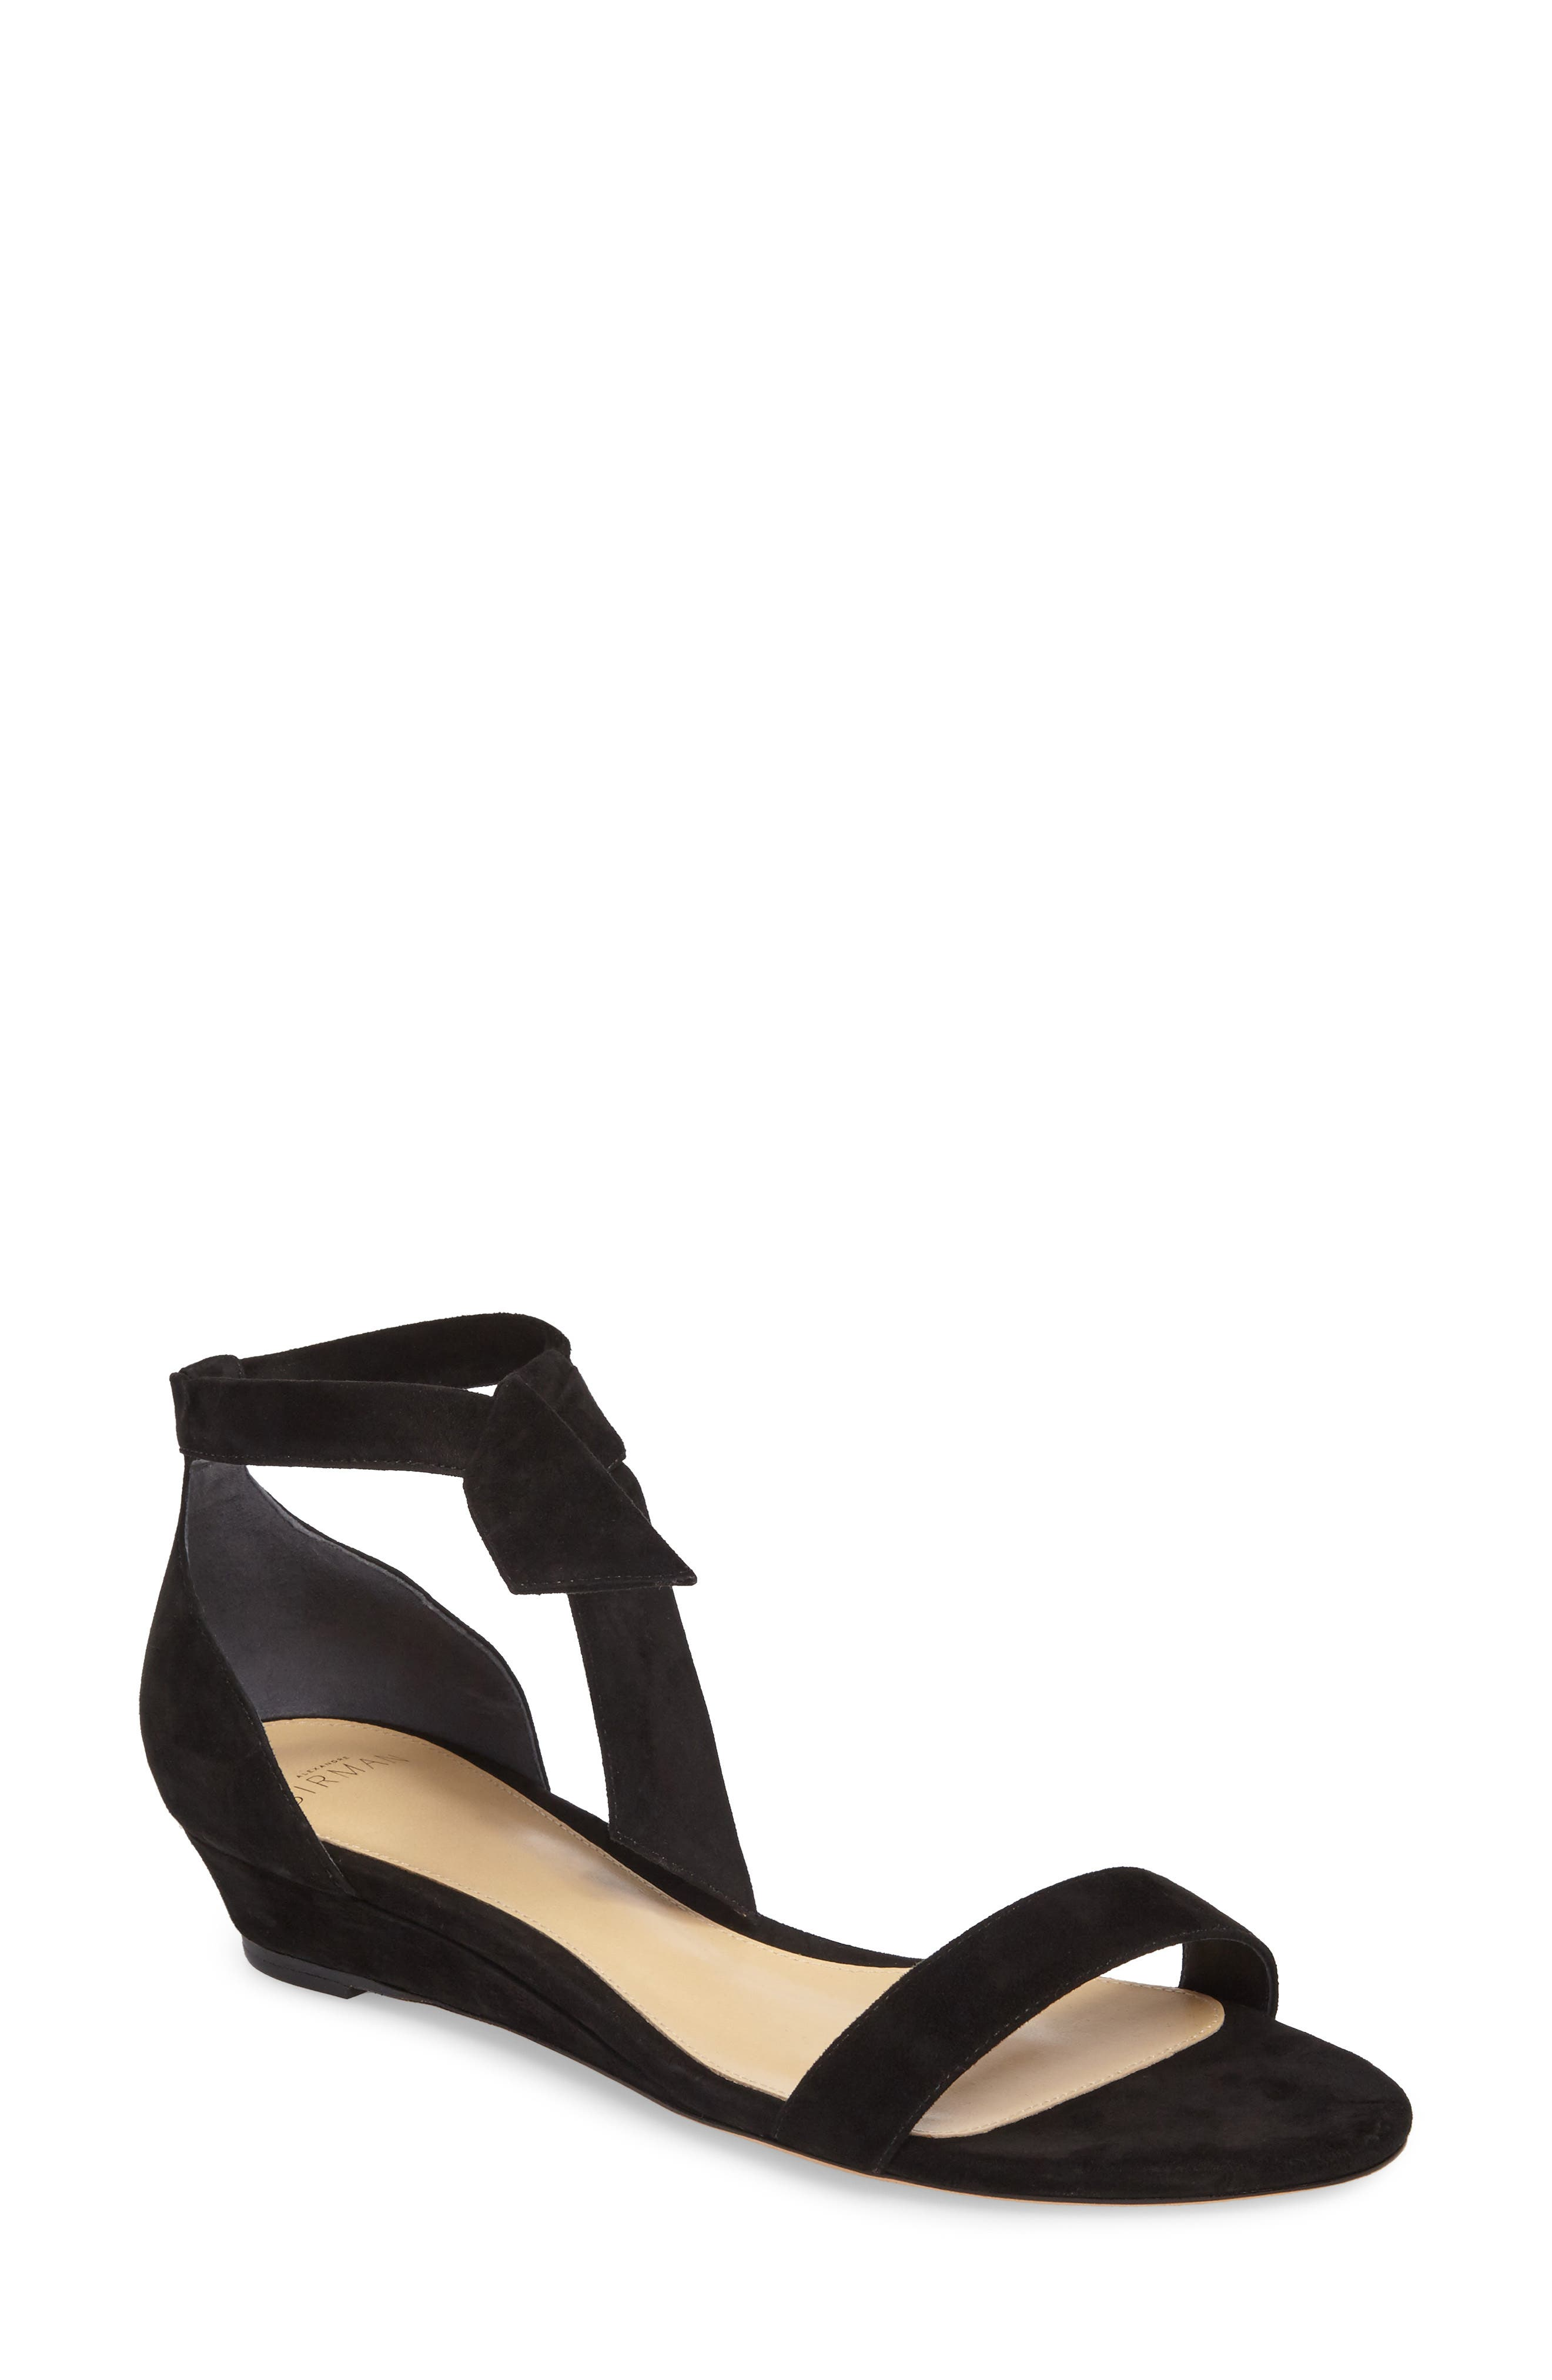 Atena Tie Strap Wedge Sandal,                             Main thumbnail 1, color,                             Black Suede